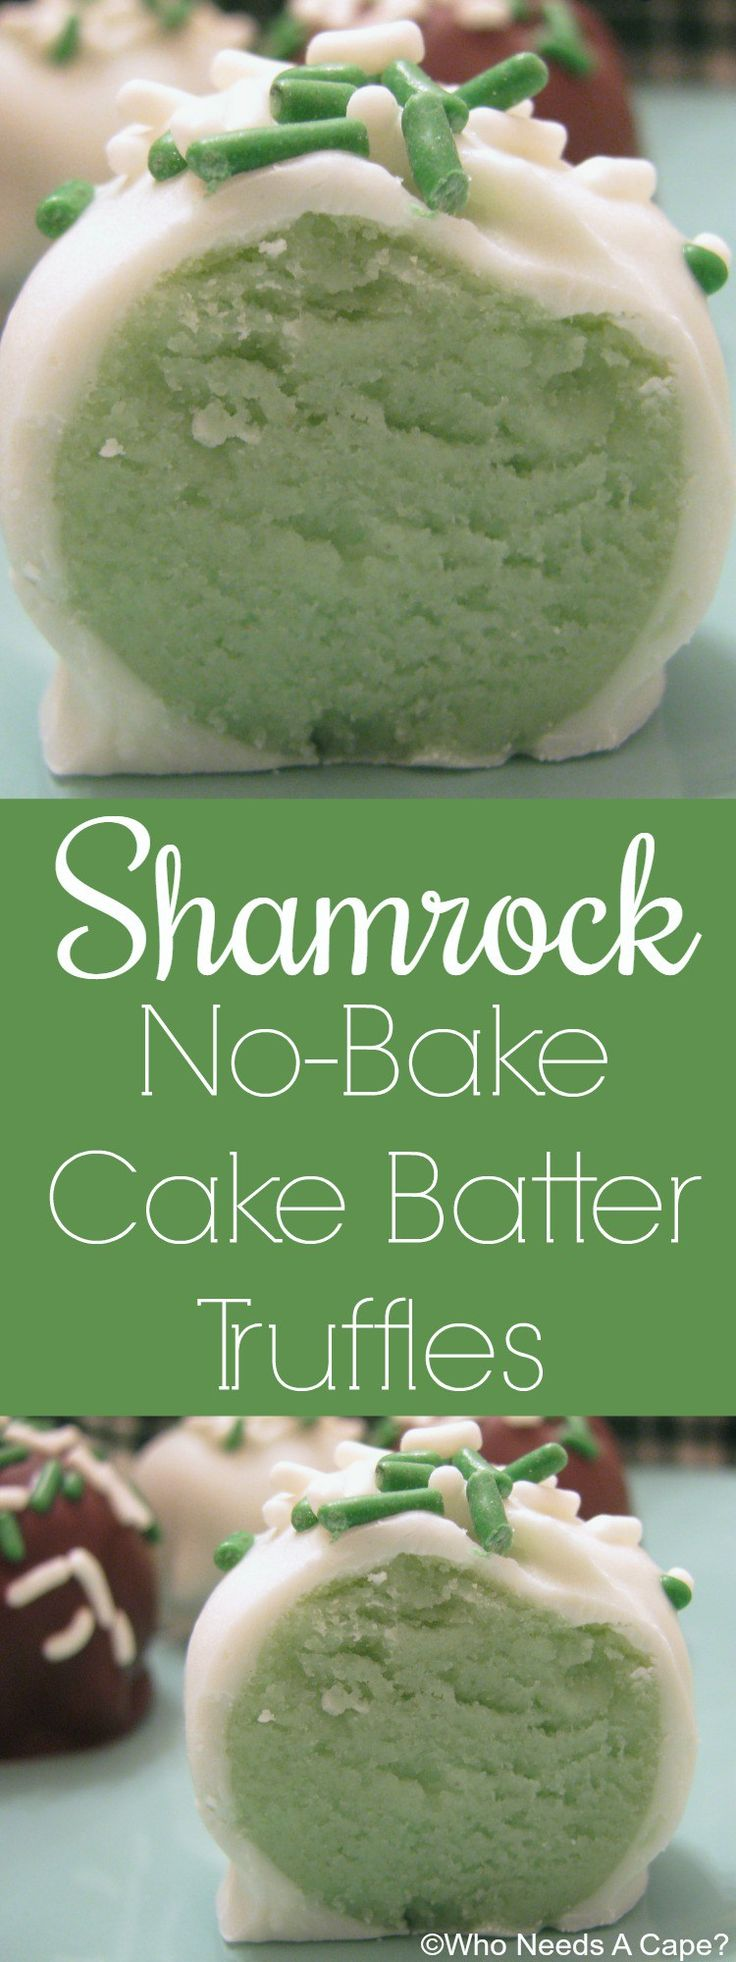 These Shamrock No-Bake Cake Batter Truffles are just perfect for St. Patrick's Day celebrations! Everyone loves these these bite-sized no bake balls!   Who Needs A Cape?  